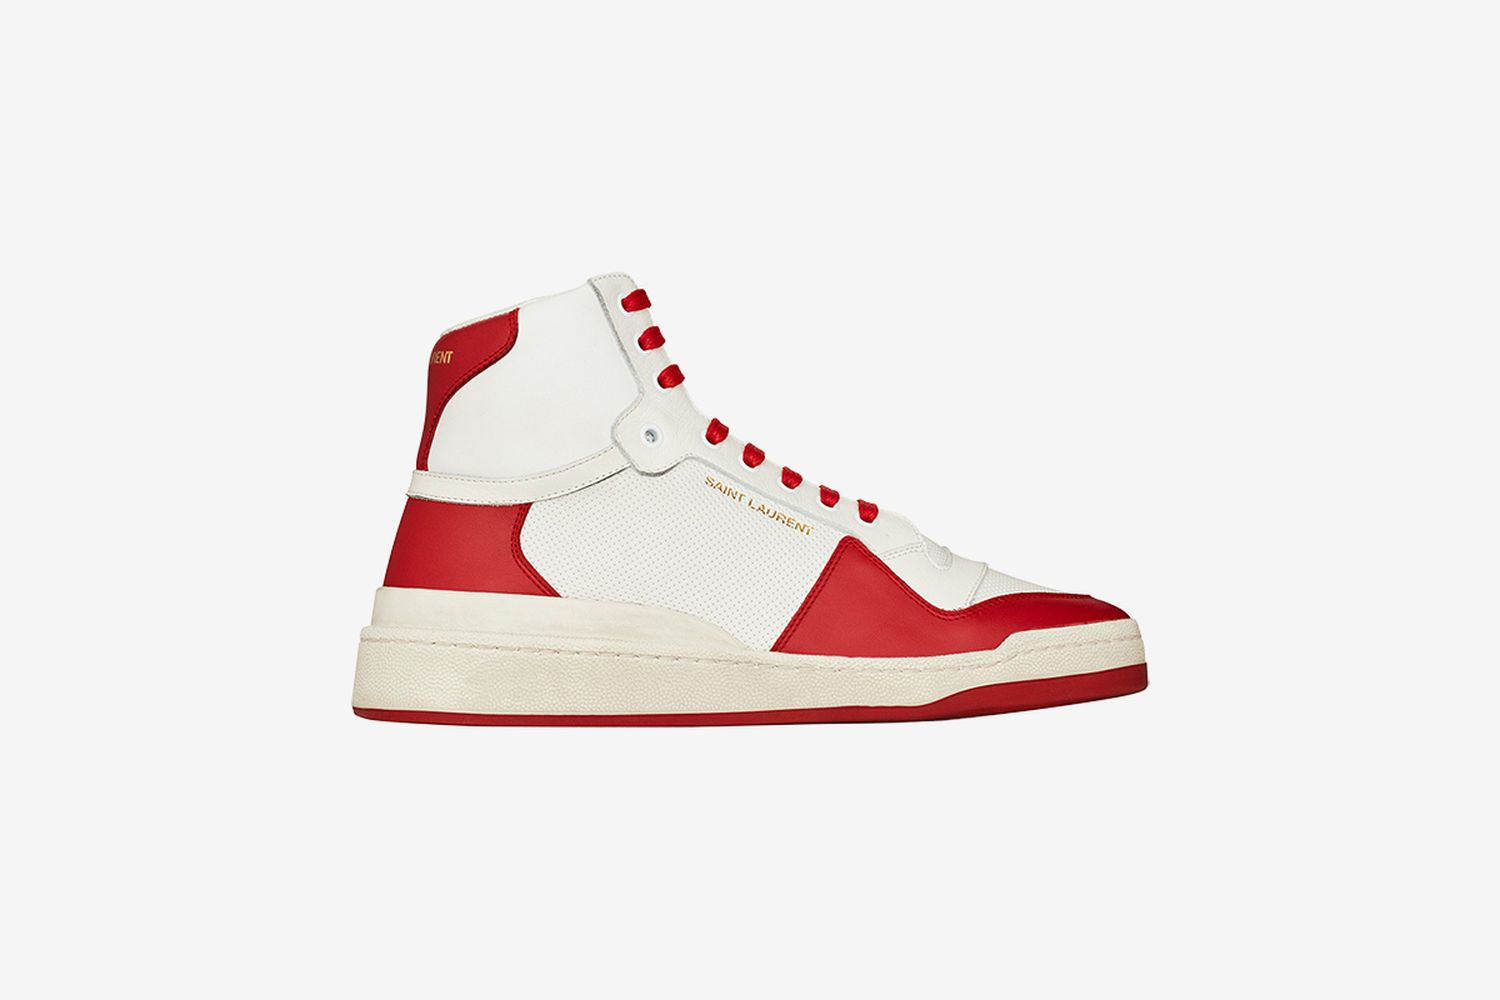 SL24 Mid-Top Sneakers in Perforated and Grained Leather